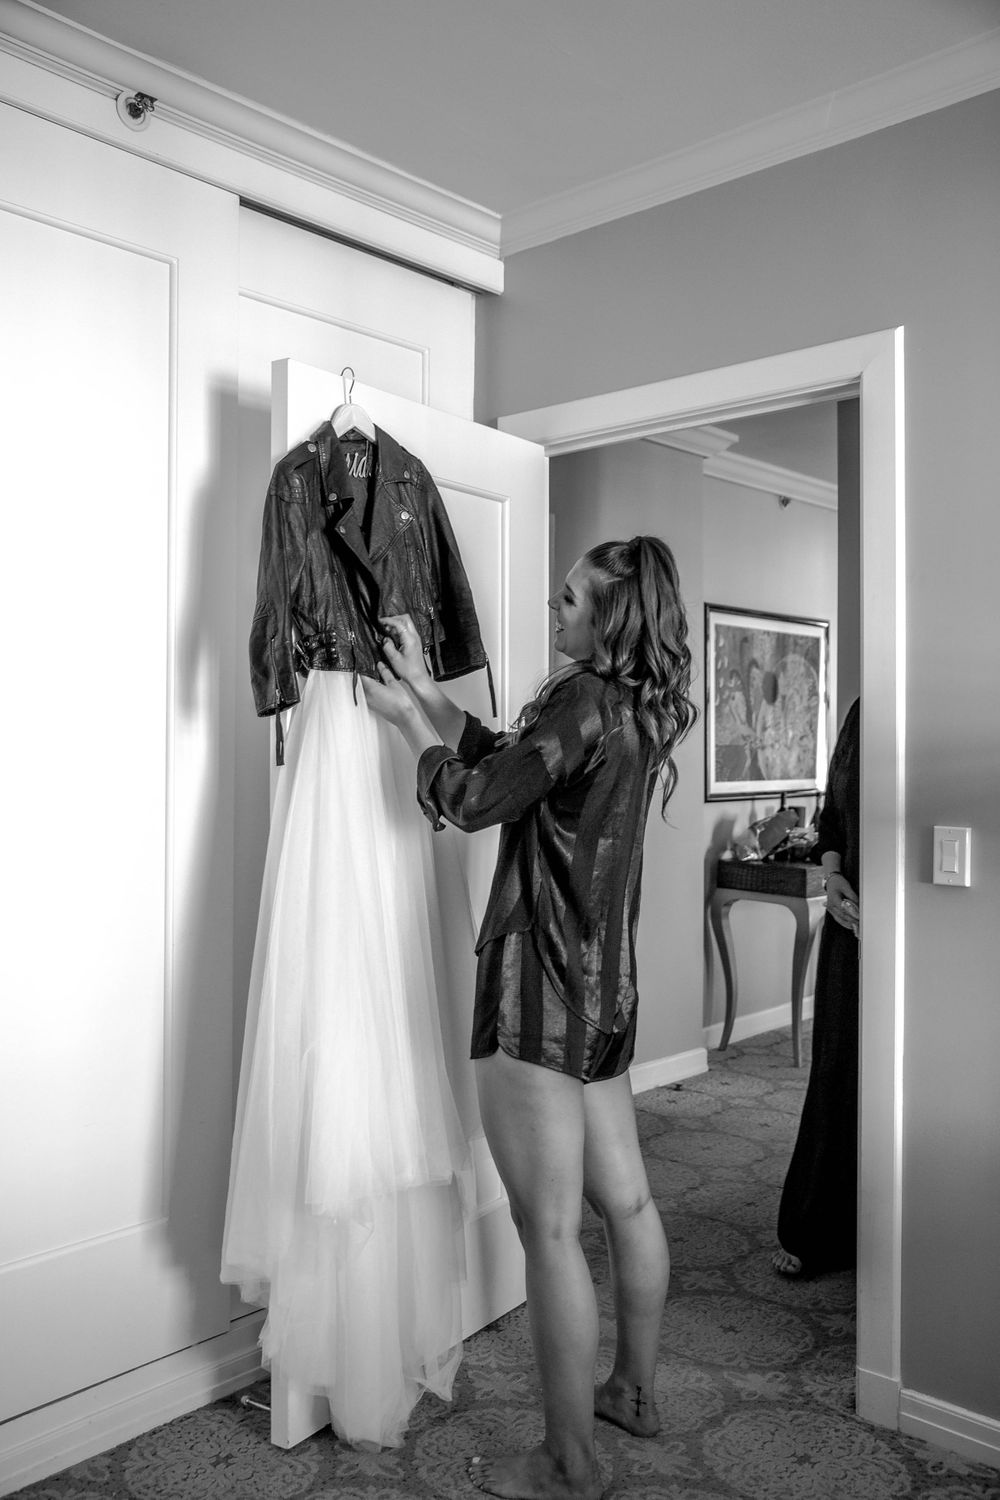 rebecca skidgel photography marina academy san francisco wedding bride admiring her wedding dress